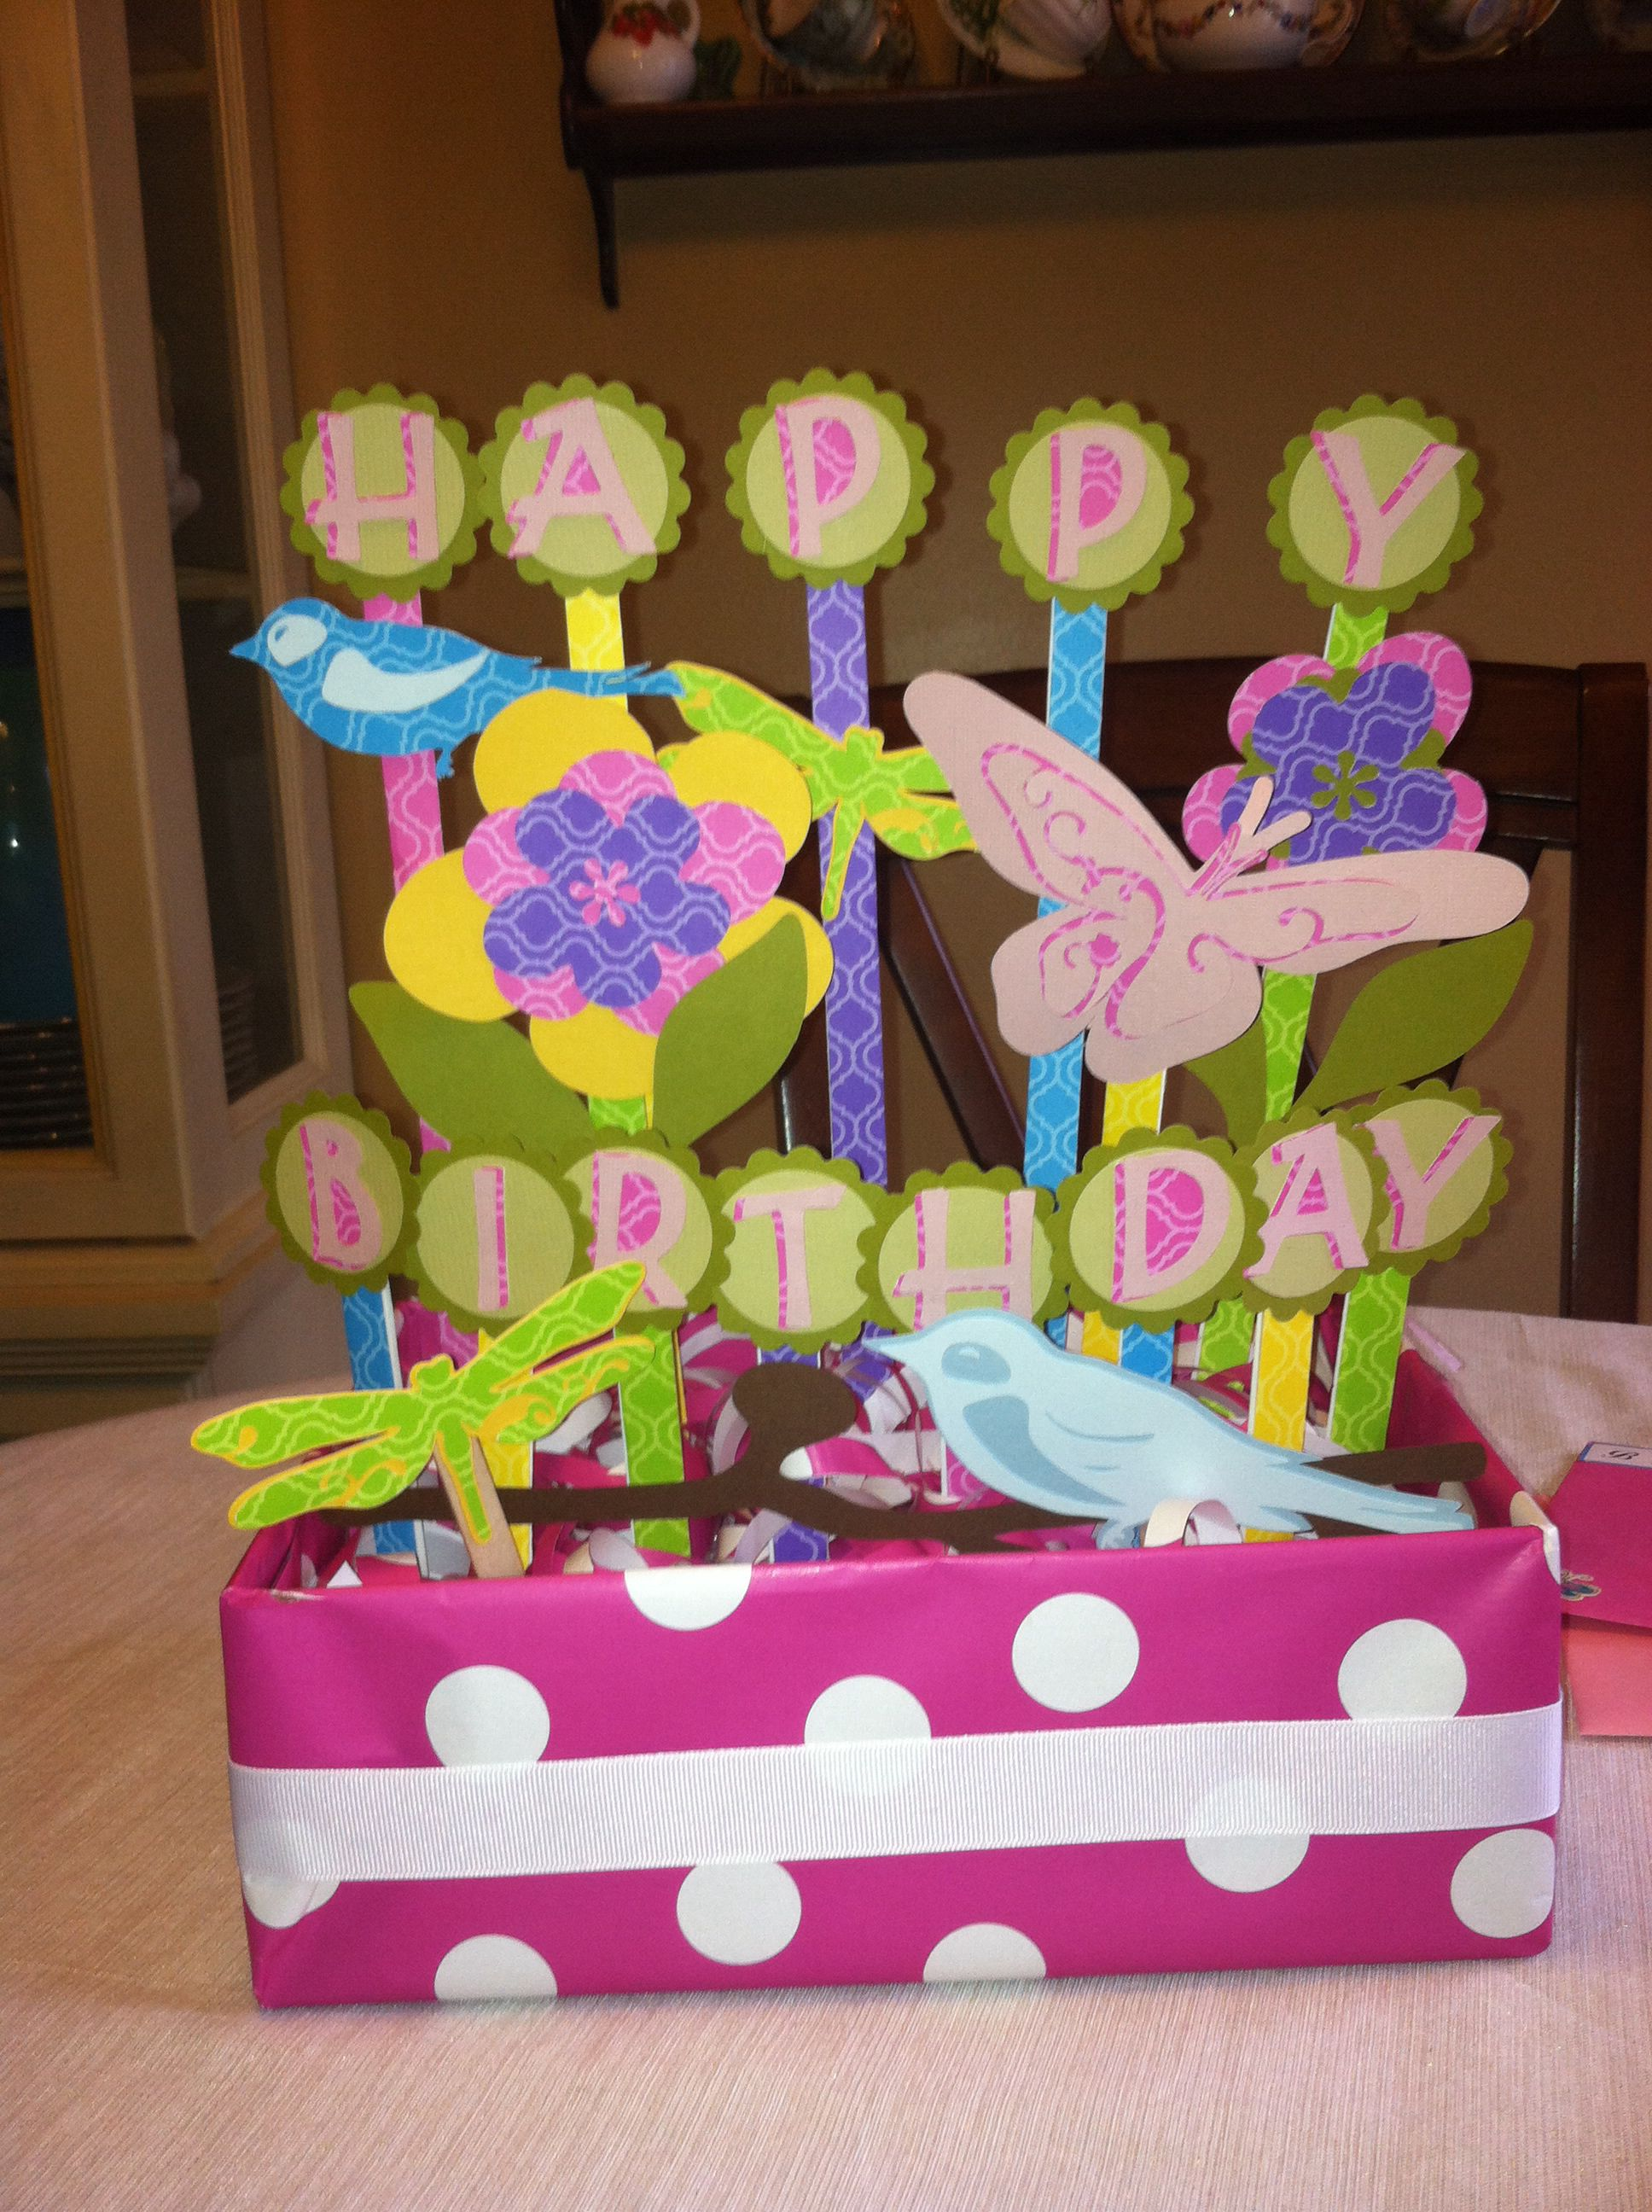 Barb'.Birthday centerpiece ... Worked with what I had.  Wrapped a shoe box in wrapping paper a piece of ribbon and then used the cricut and punches.